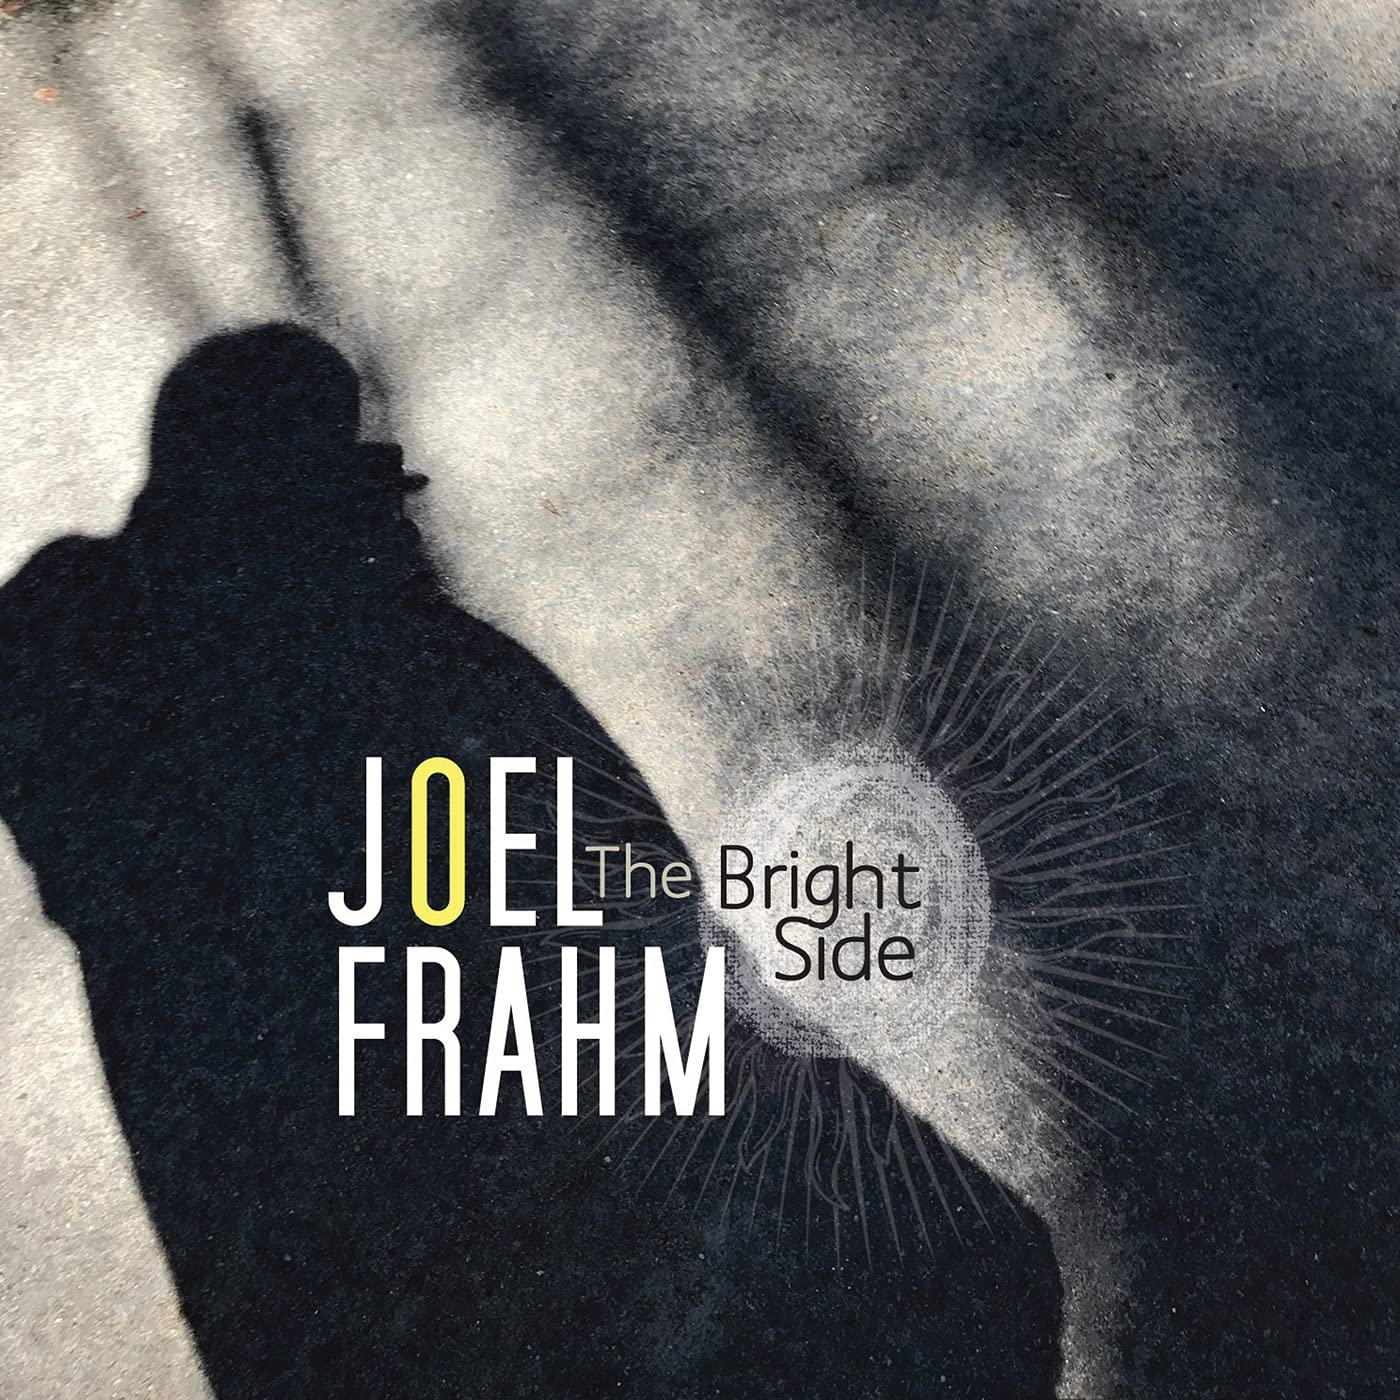 JOEL FRAHM - The Bright Side cover